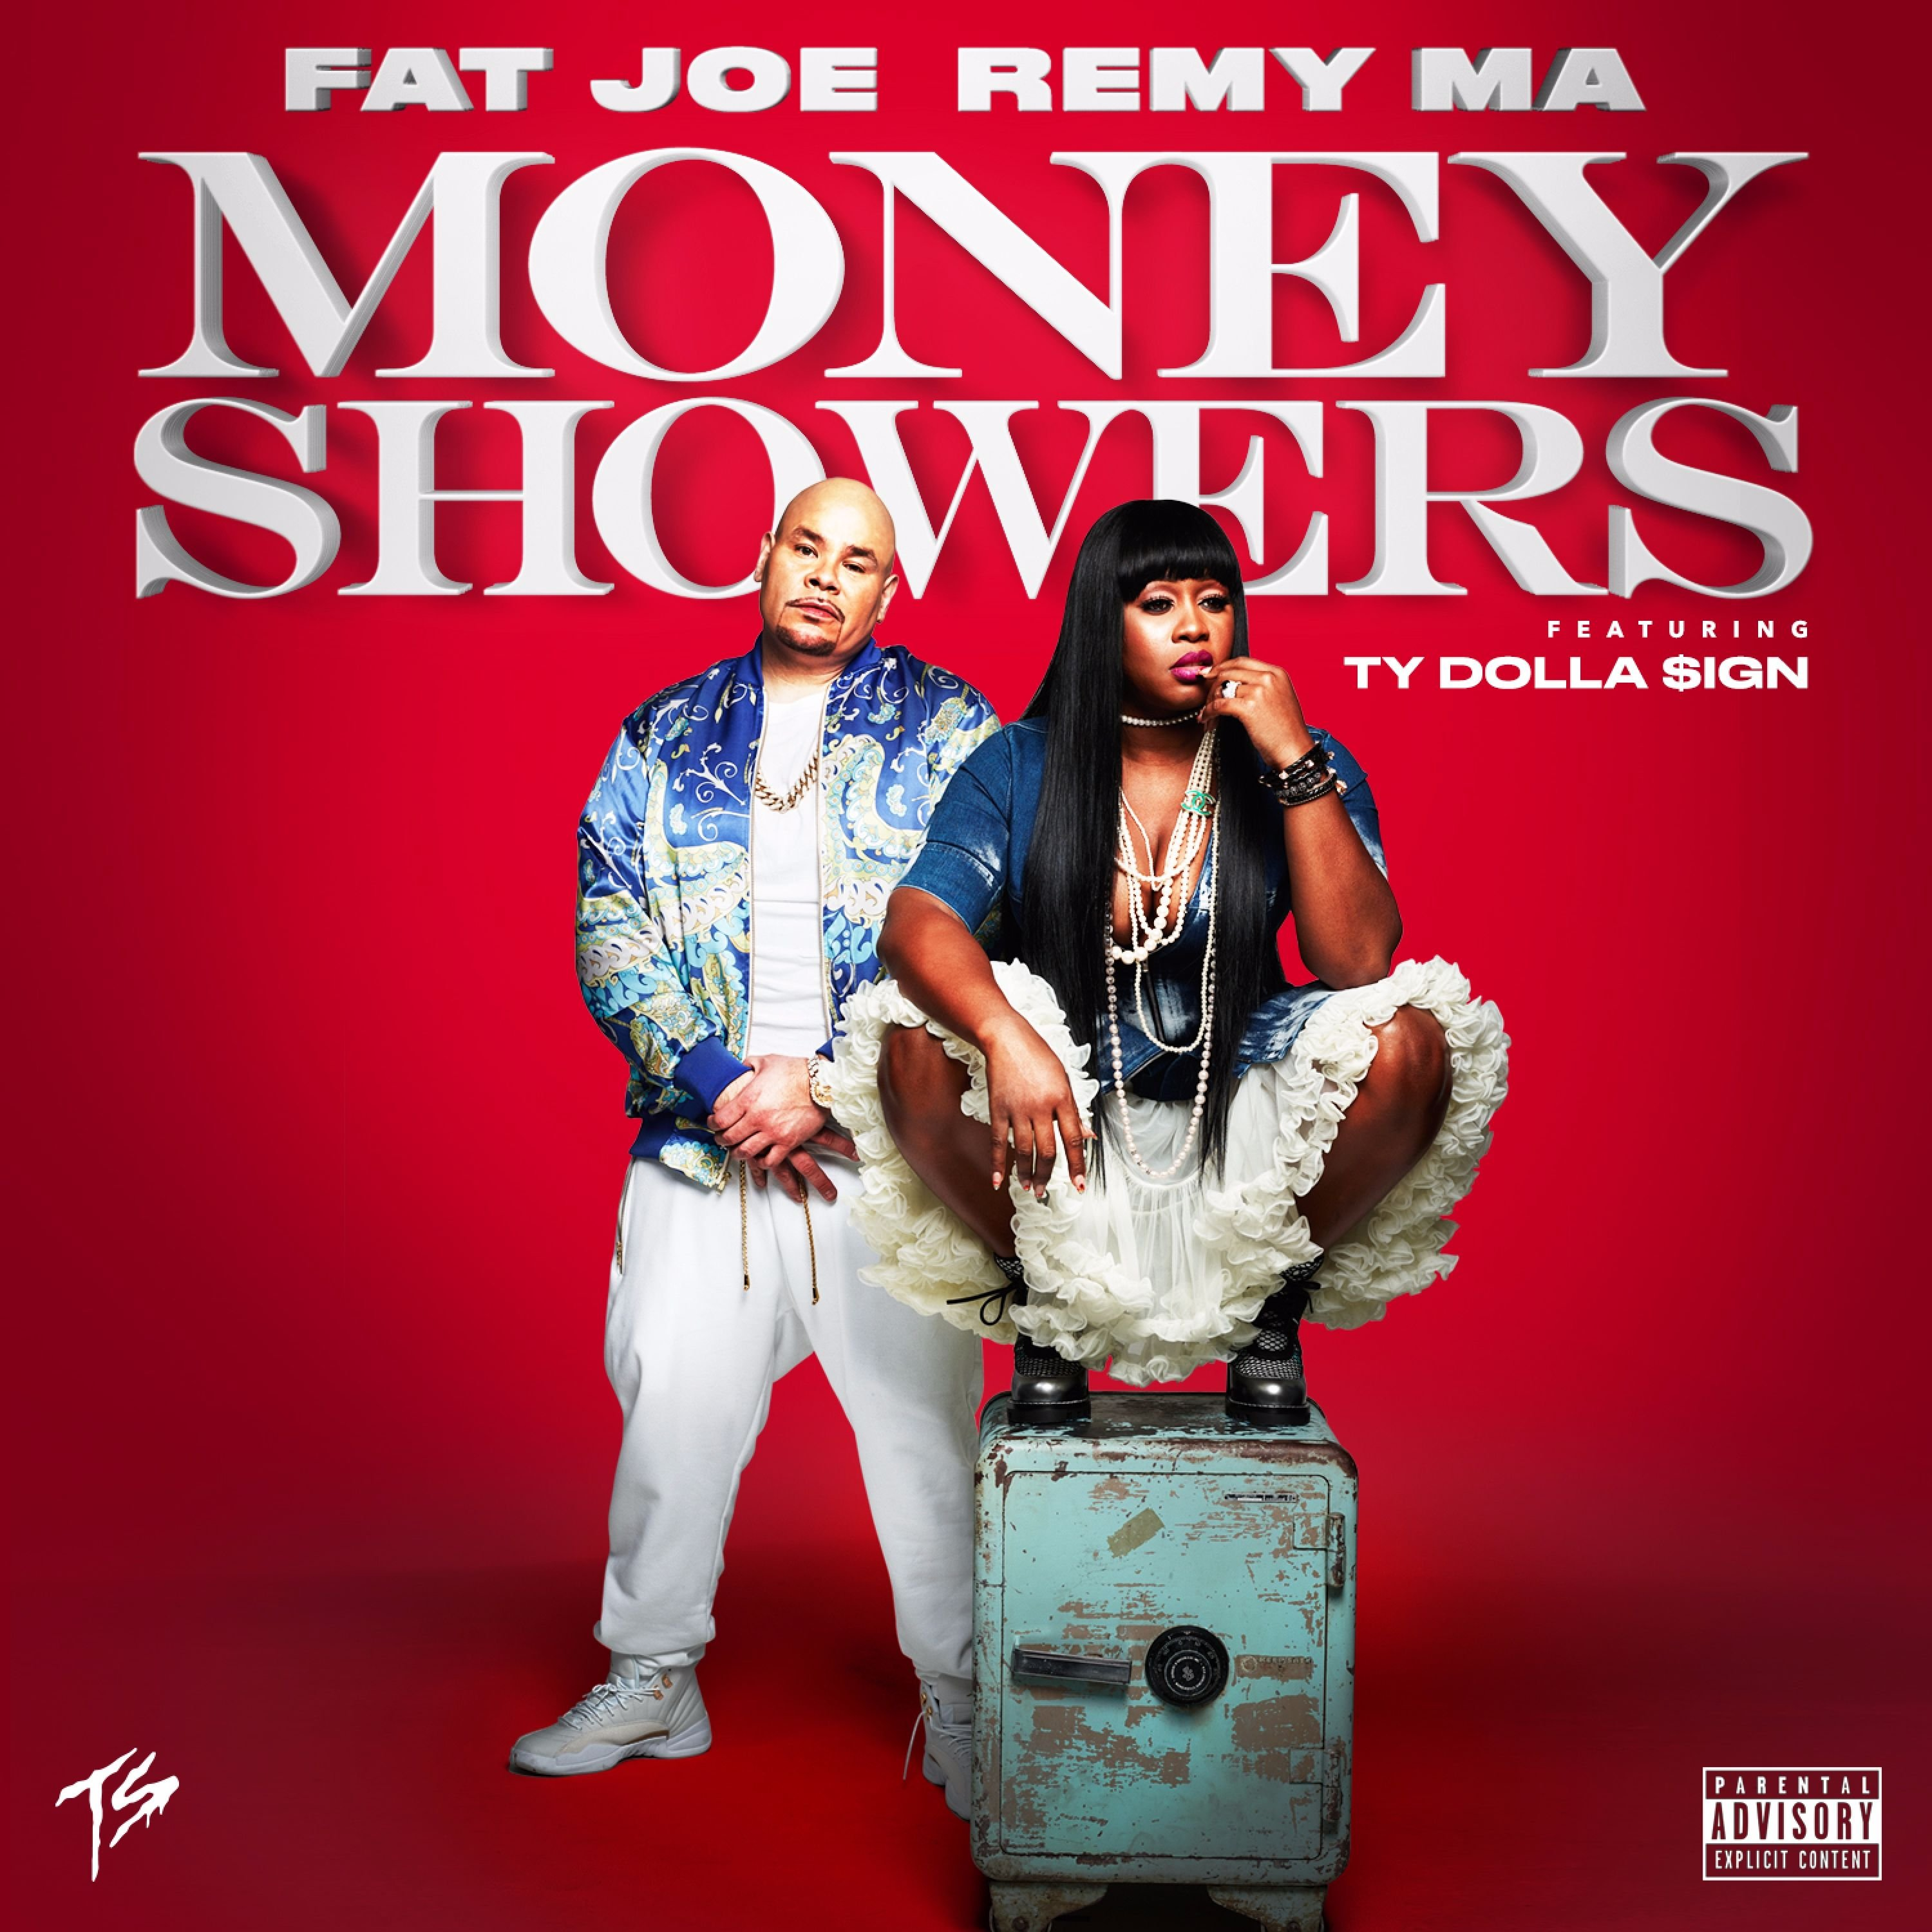 fat-joe-remy-ma-money-showers-feat-ty-dolla-sign